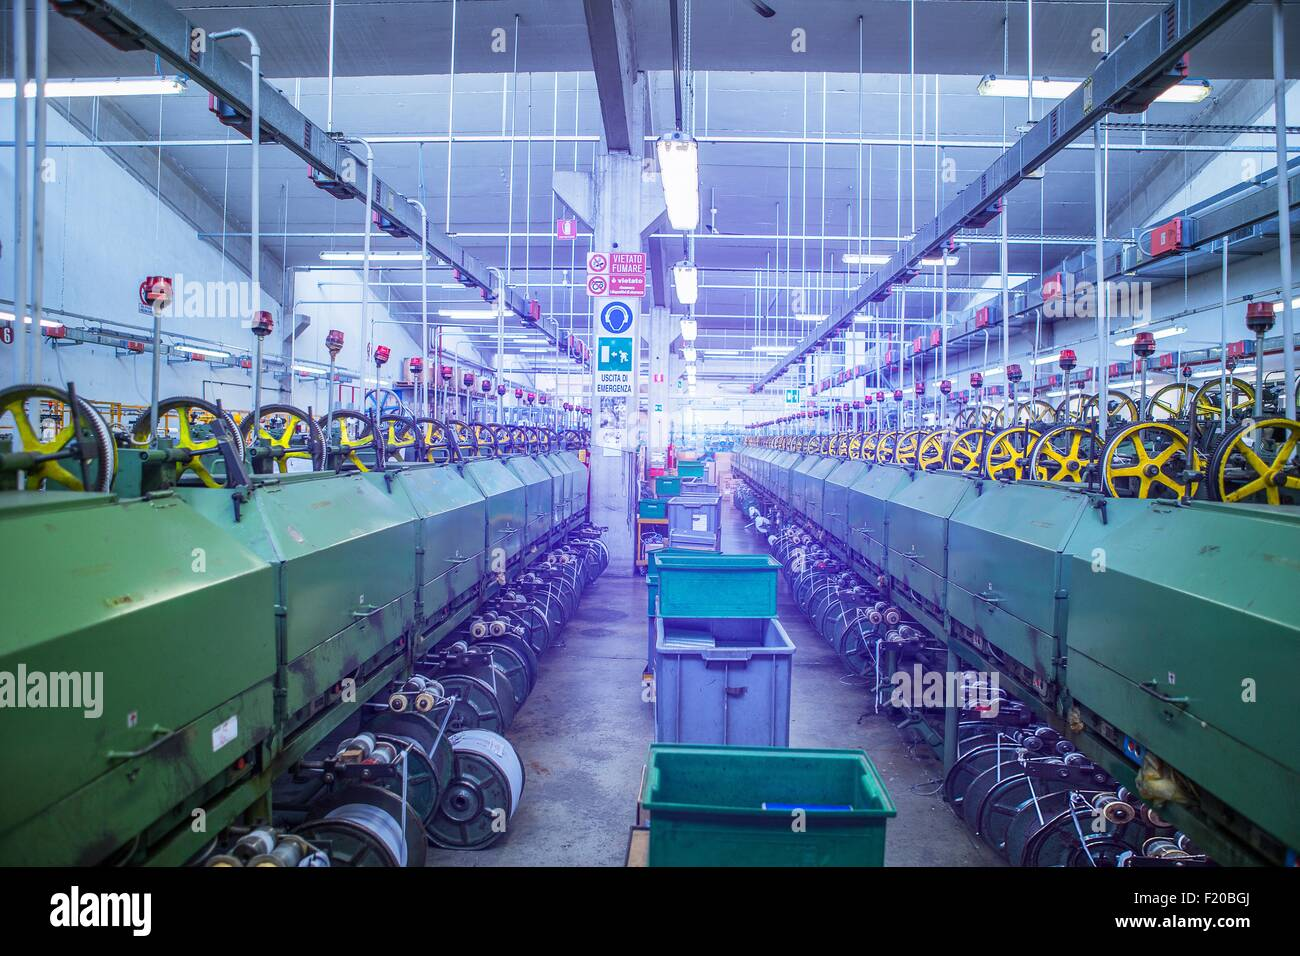 Machinery for rope production in factory that produces products for boating and camping - Stock Image